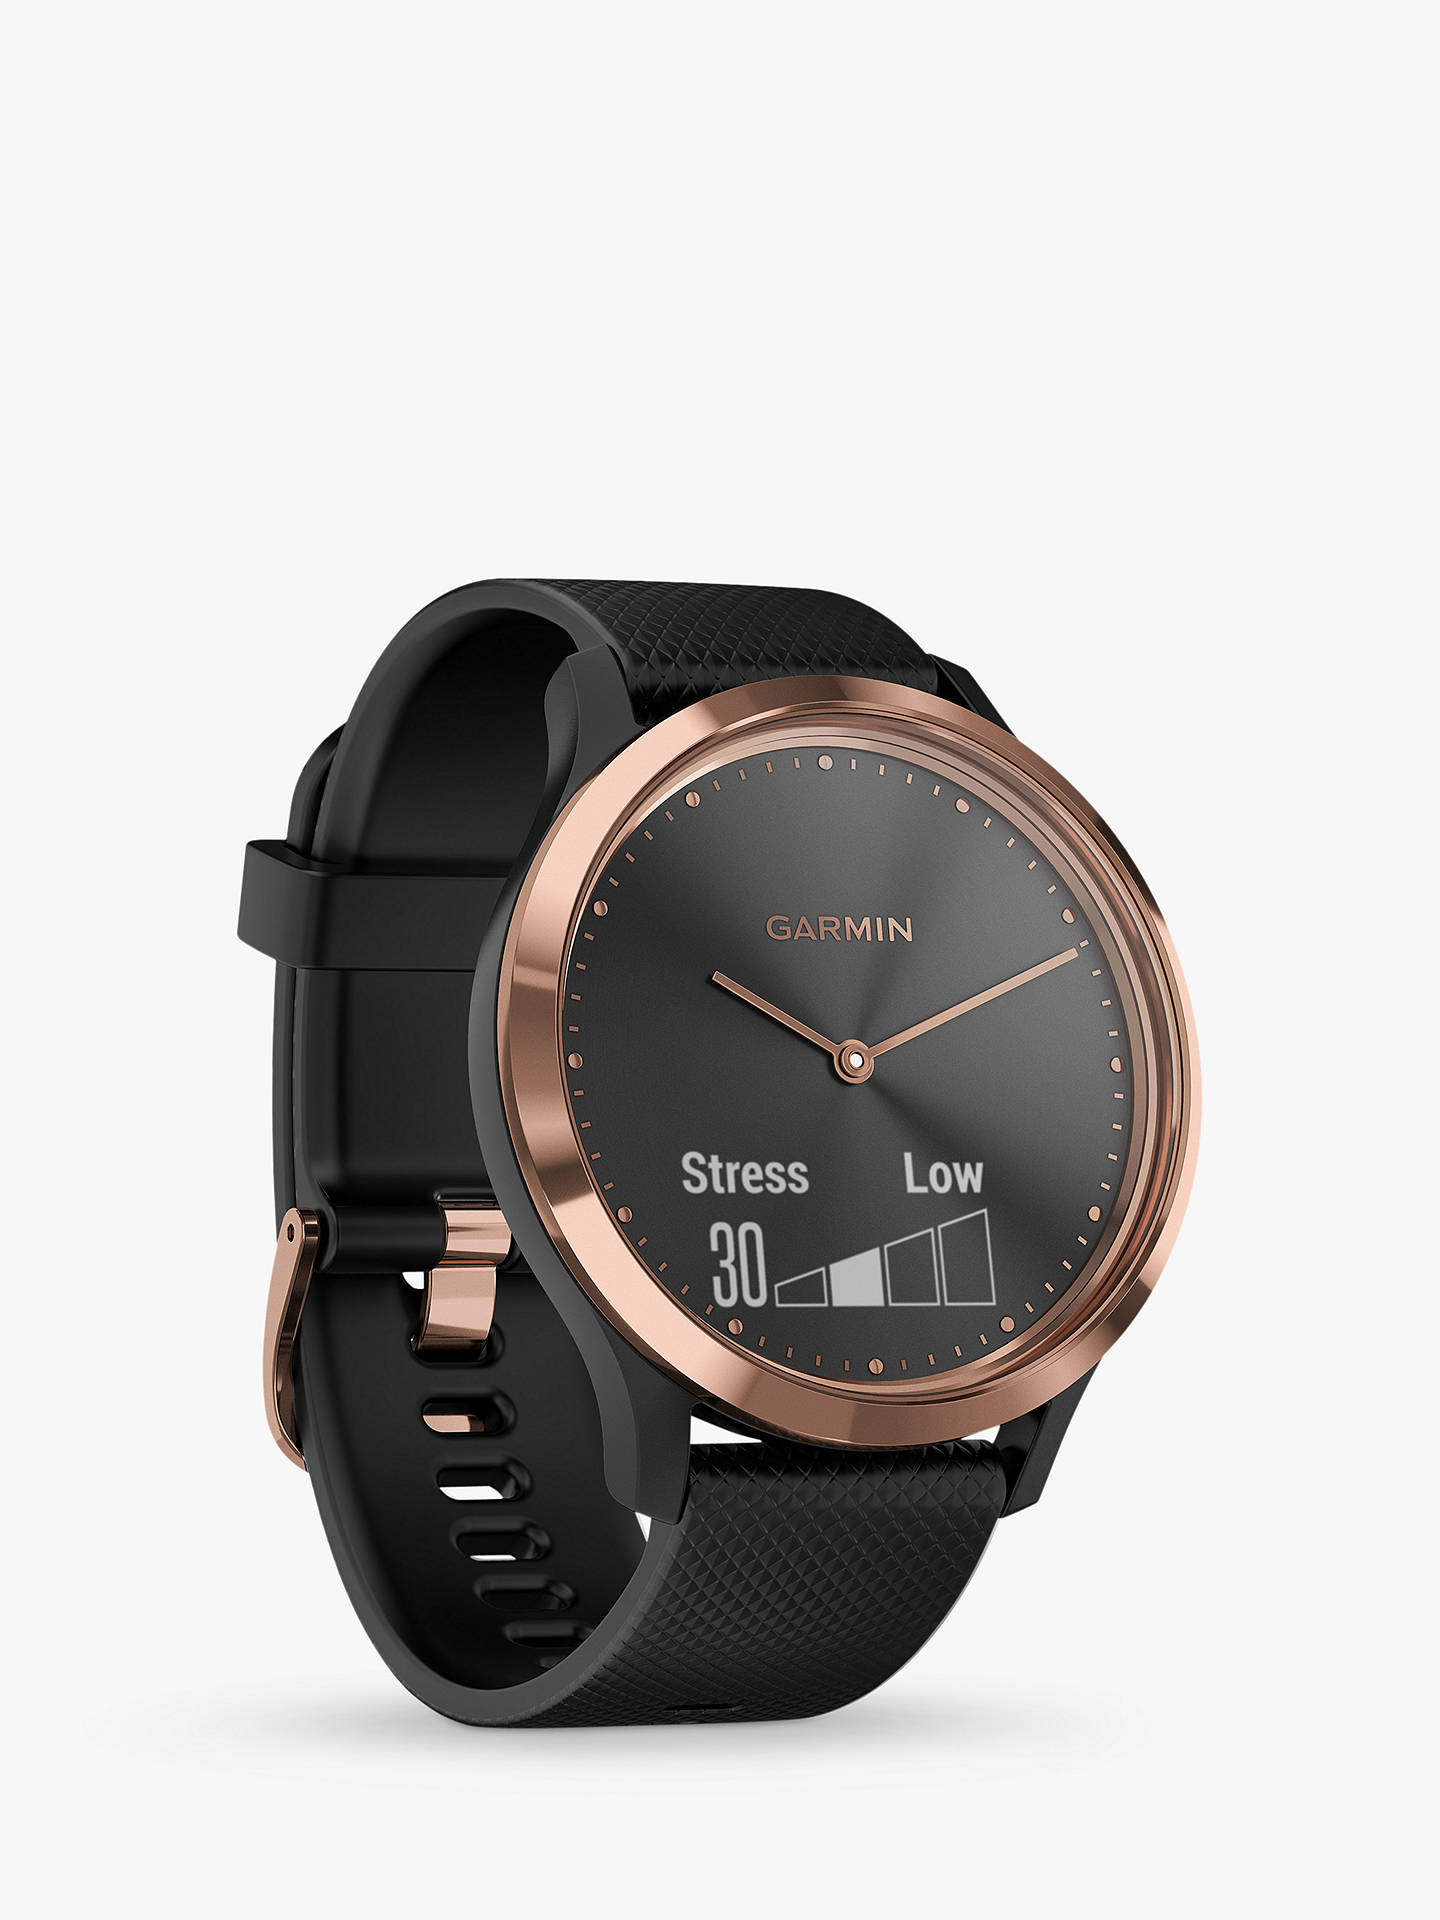 Garmin Vivomove Hr Sport Smartwatch, Small/Medium,, Black/ Rose Gold by Garmin